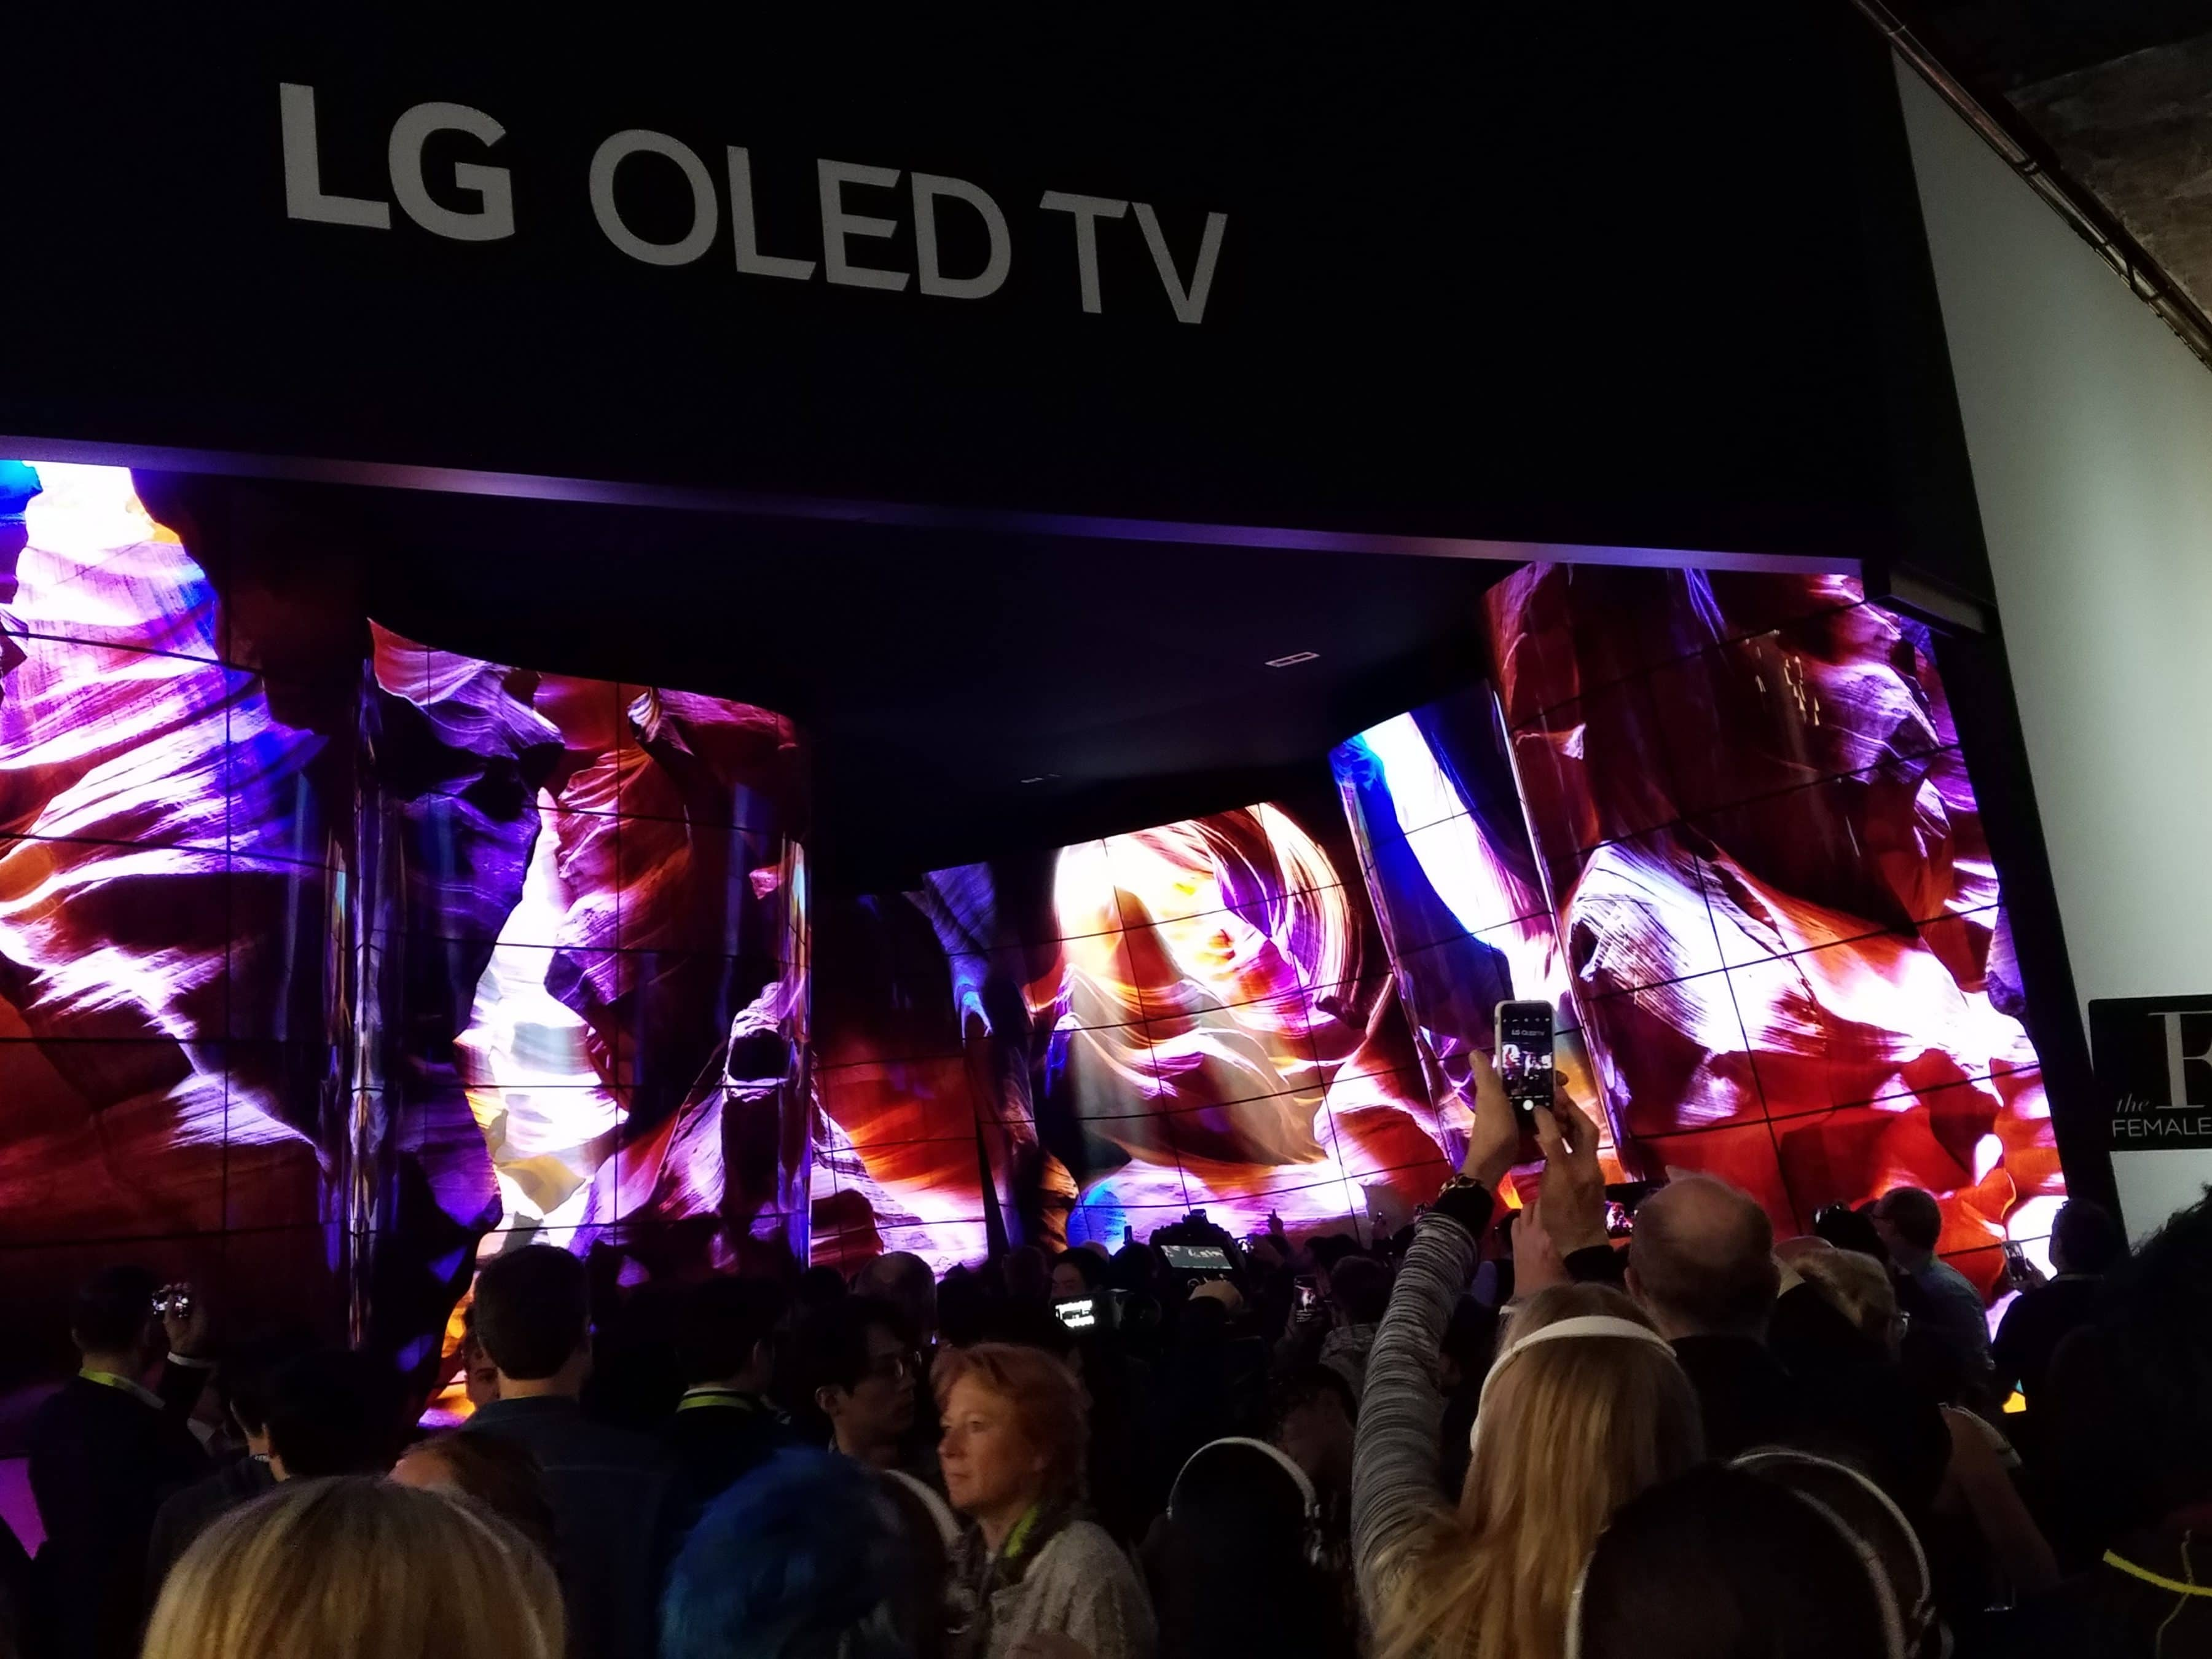 LG Curved TVs CES 2018